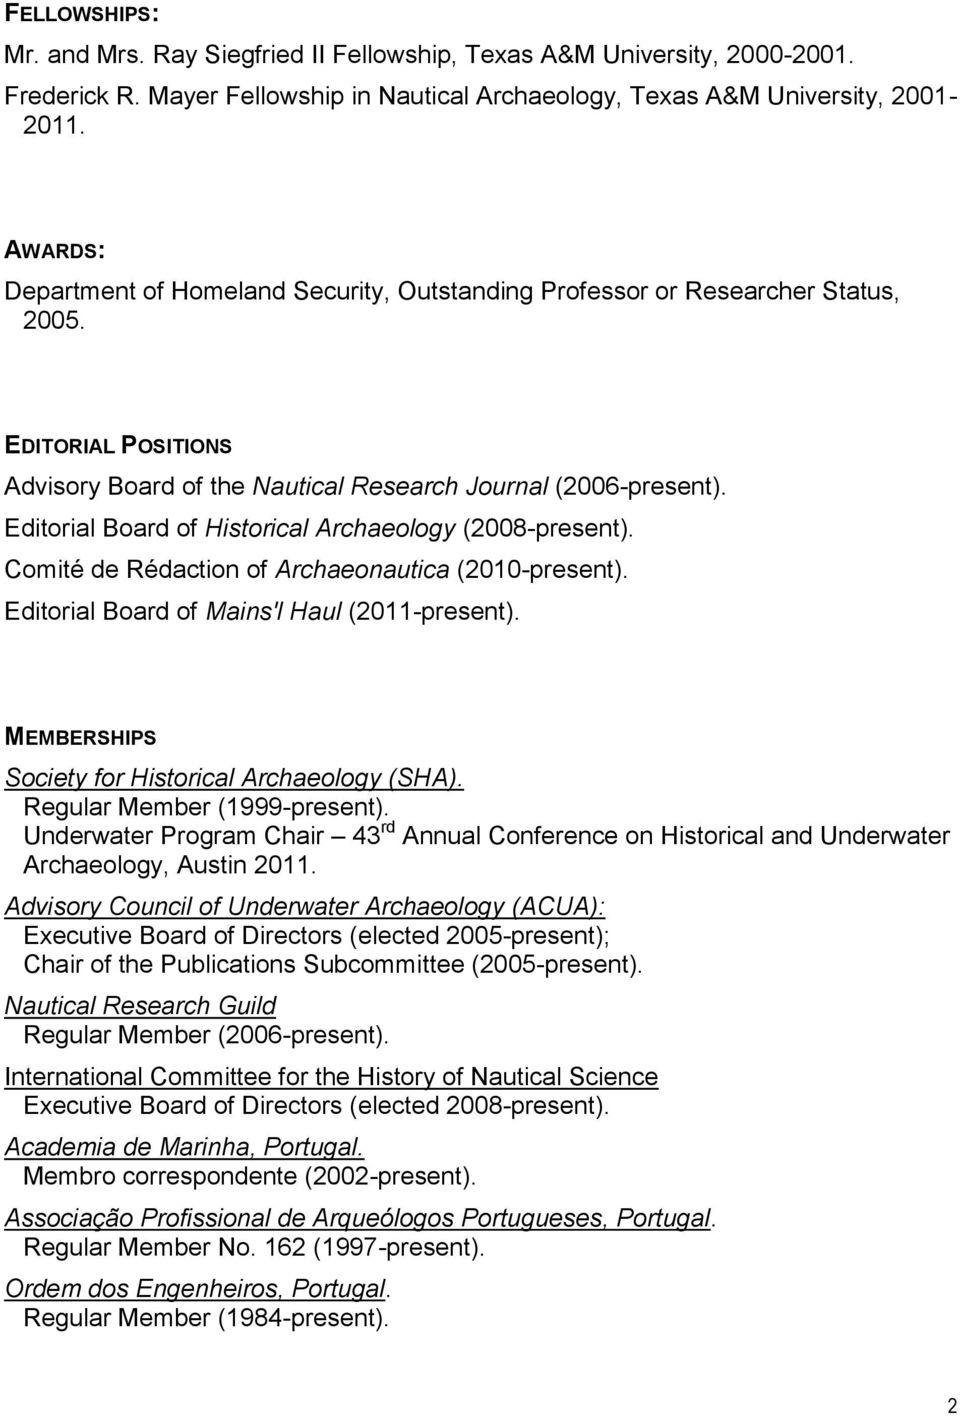 Editorial Board of Historical Archaeology (2008-present). Comité de Rédaction of Archaeonautica (2010-present). Editorial Board of Mains'l Haul (2011-present).